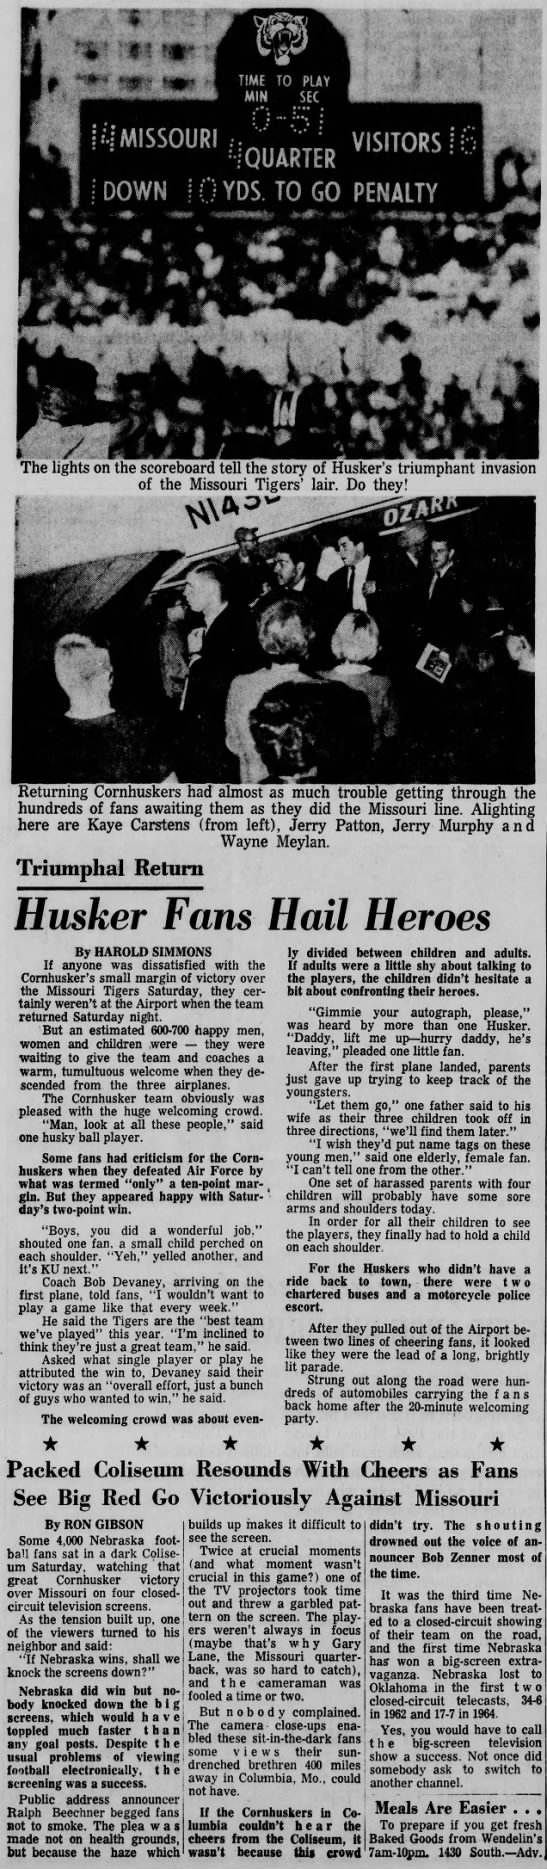 1965 Nebraska-Missouri football, page one coverage -